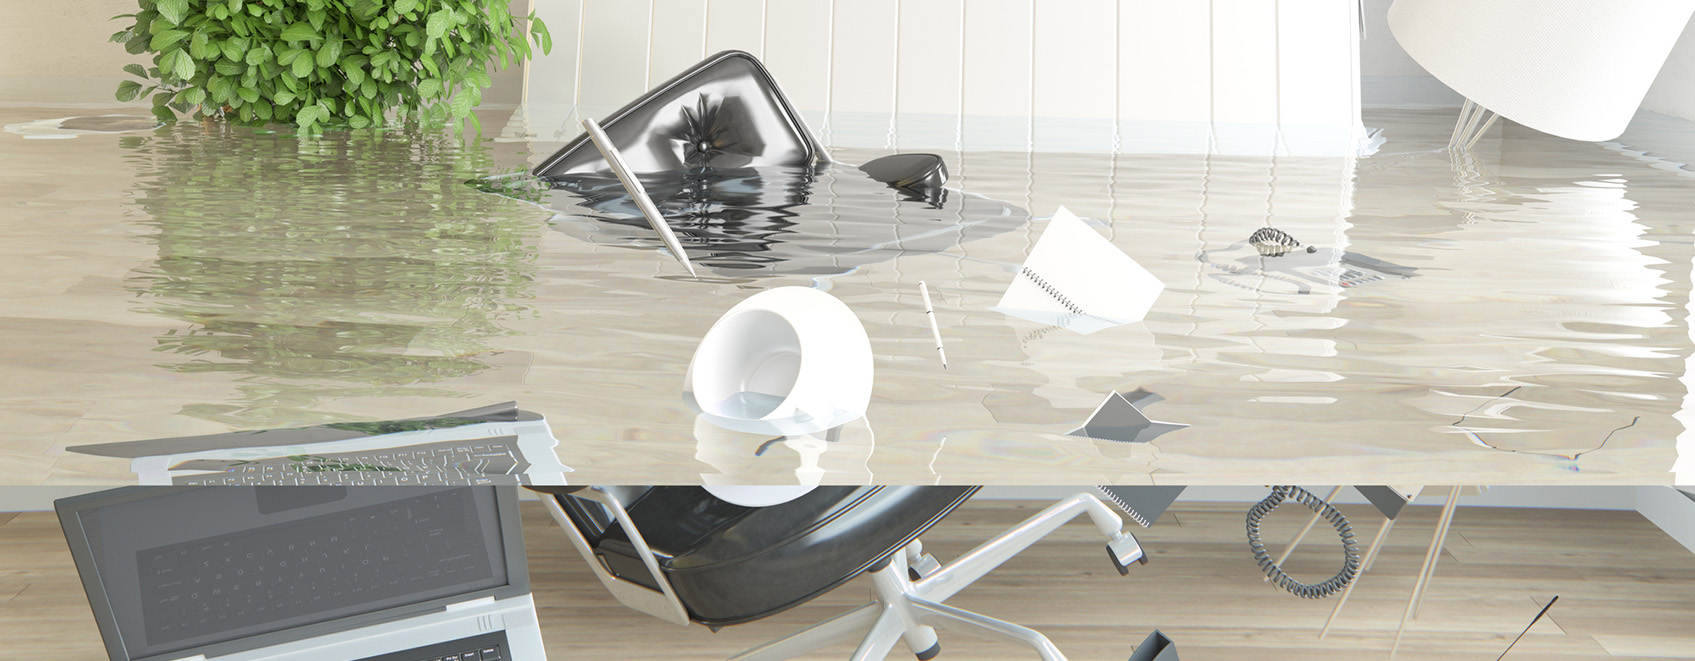 a flooded office, with furniture floating in the water